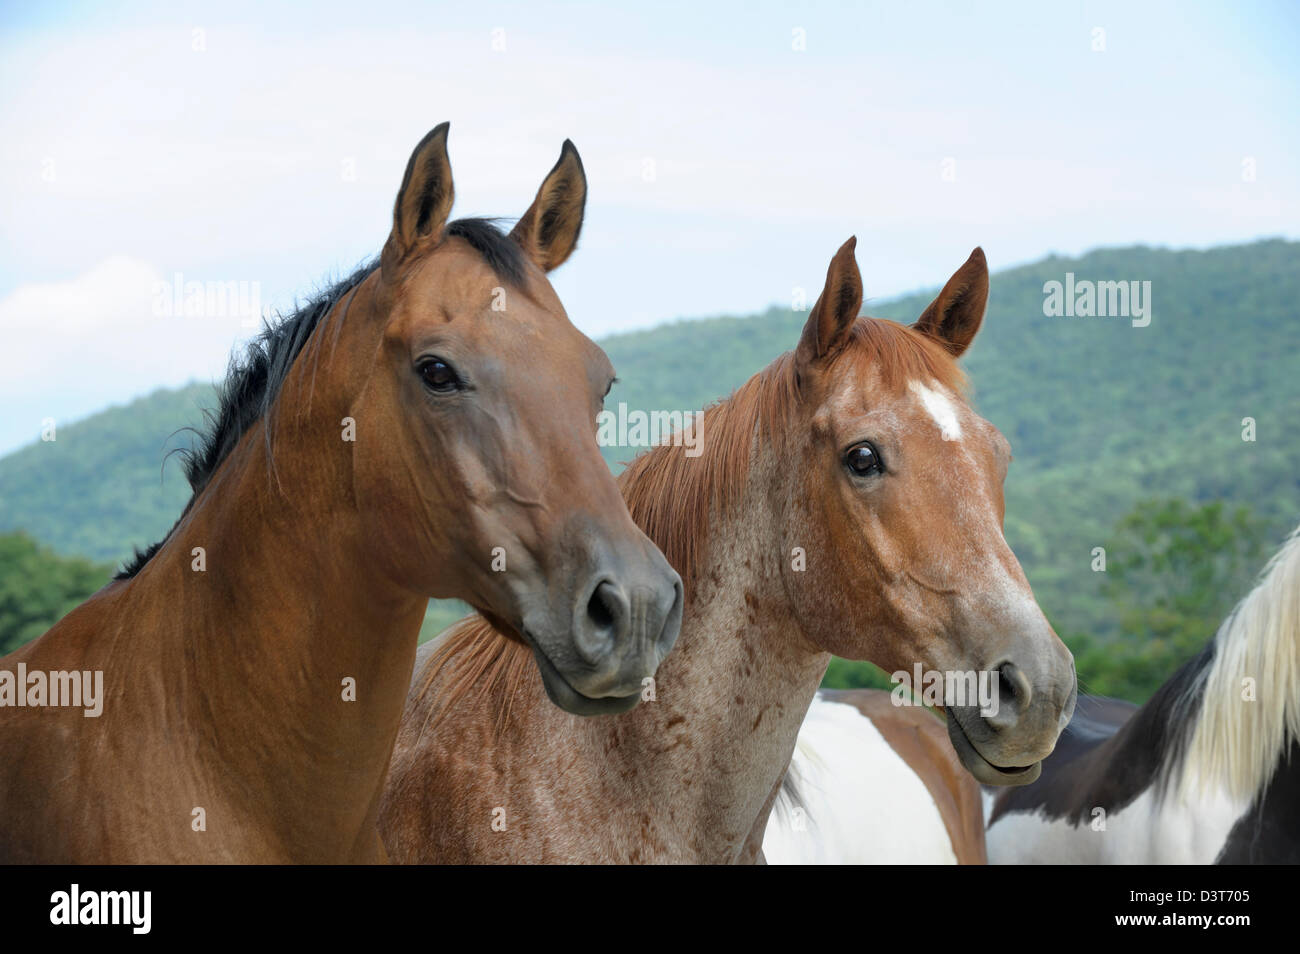 Horses alert and looking toward camera right with green mountain background, front view. Stock Photo